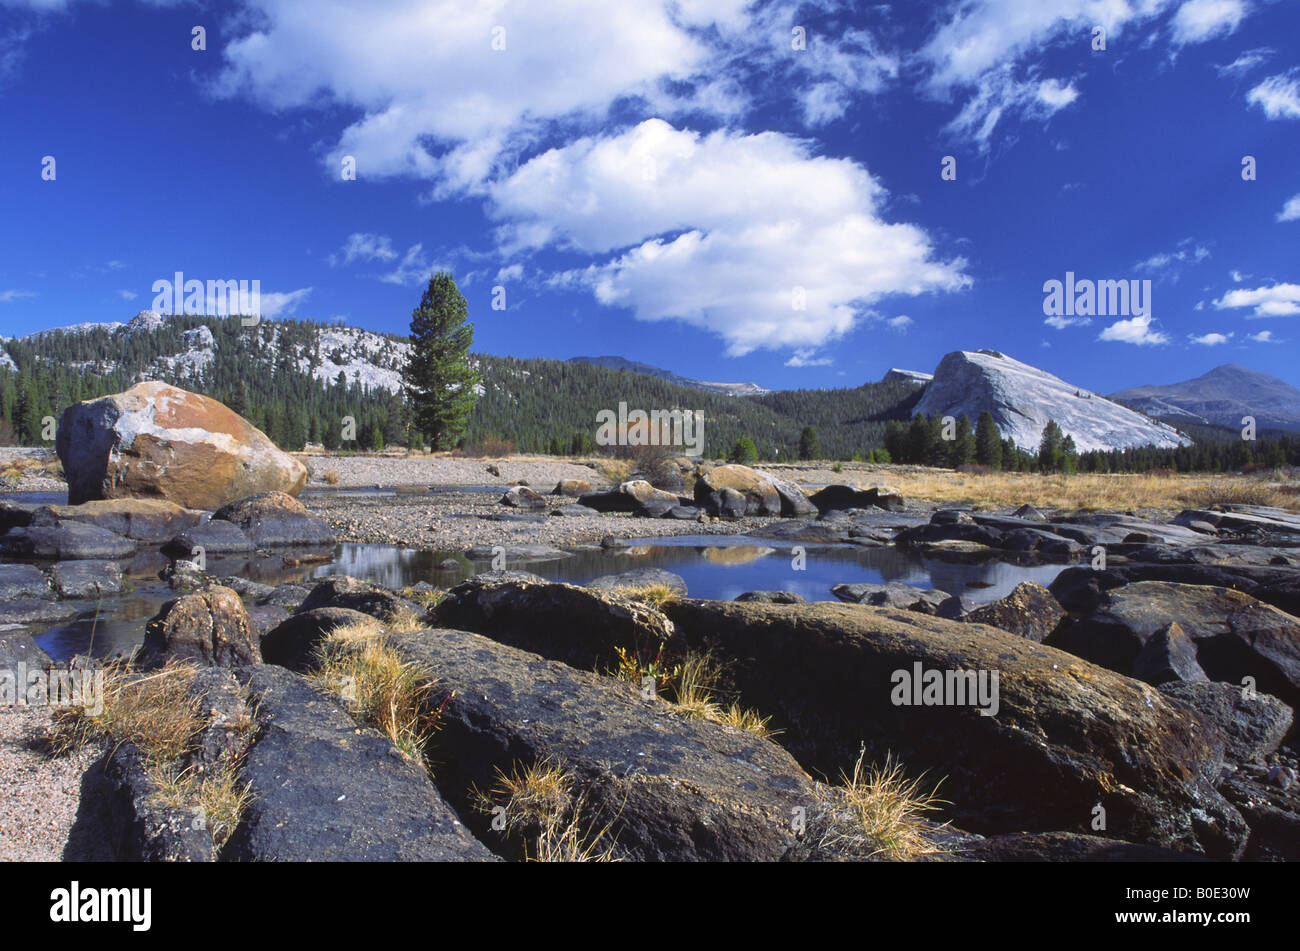 Glacially polished boulders in Yosemite National Park, California Stock Photo